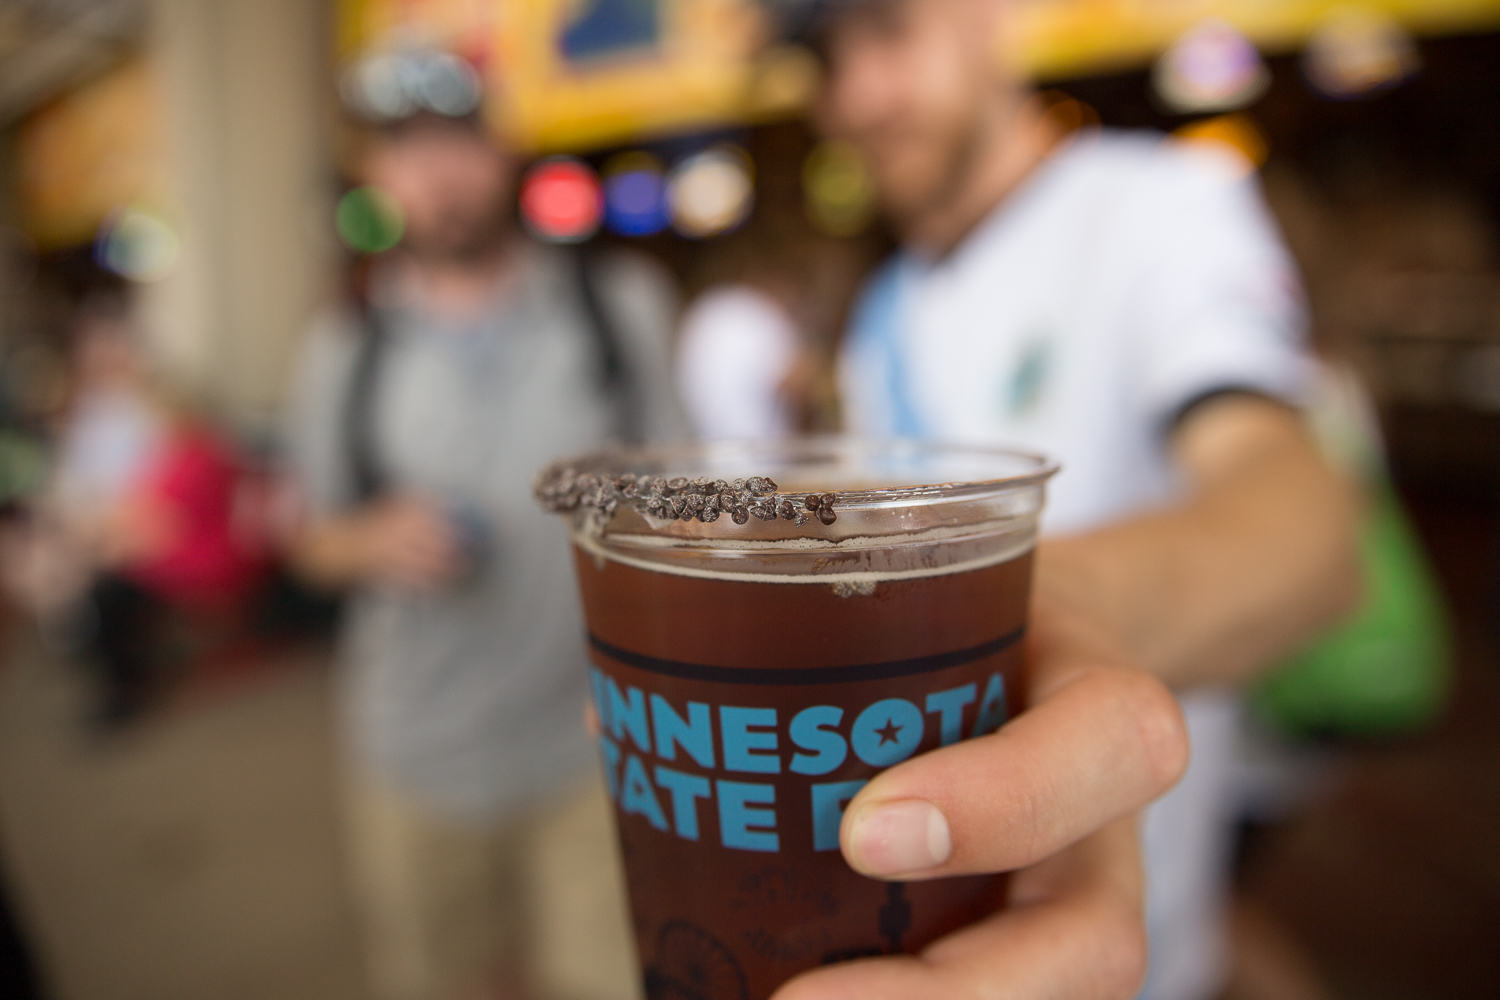 Big Wood's Chocolate Chip Cookie beer at Andy's Grille at the Minnesota State Fair // Photo by Aaron Davidson, The Growler